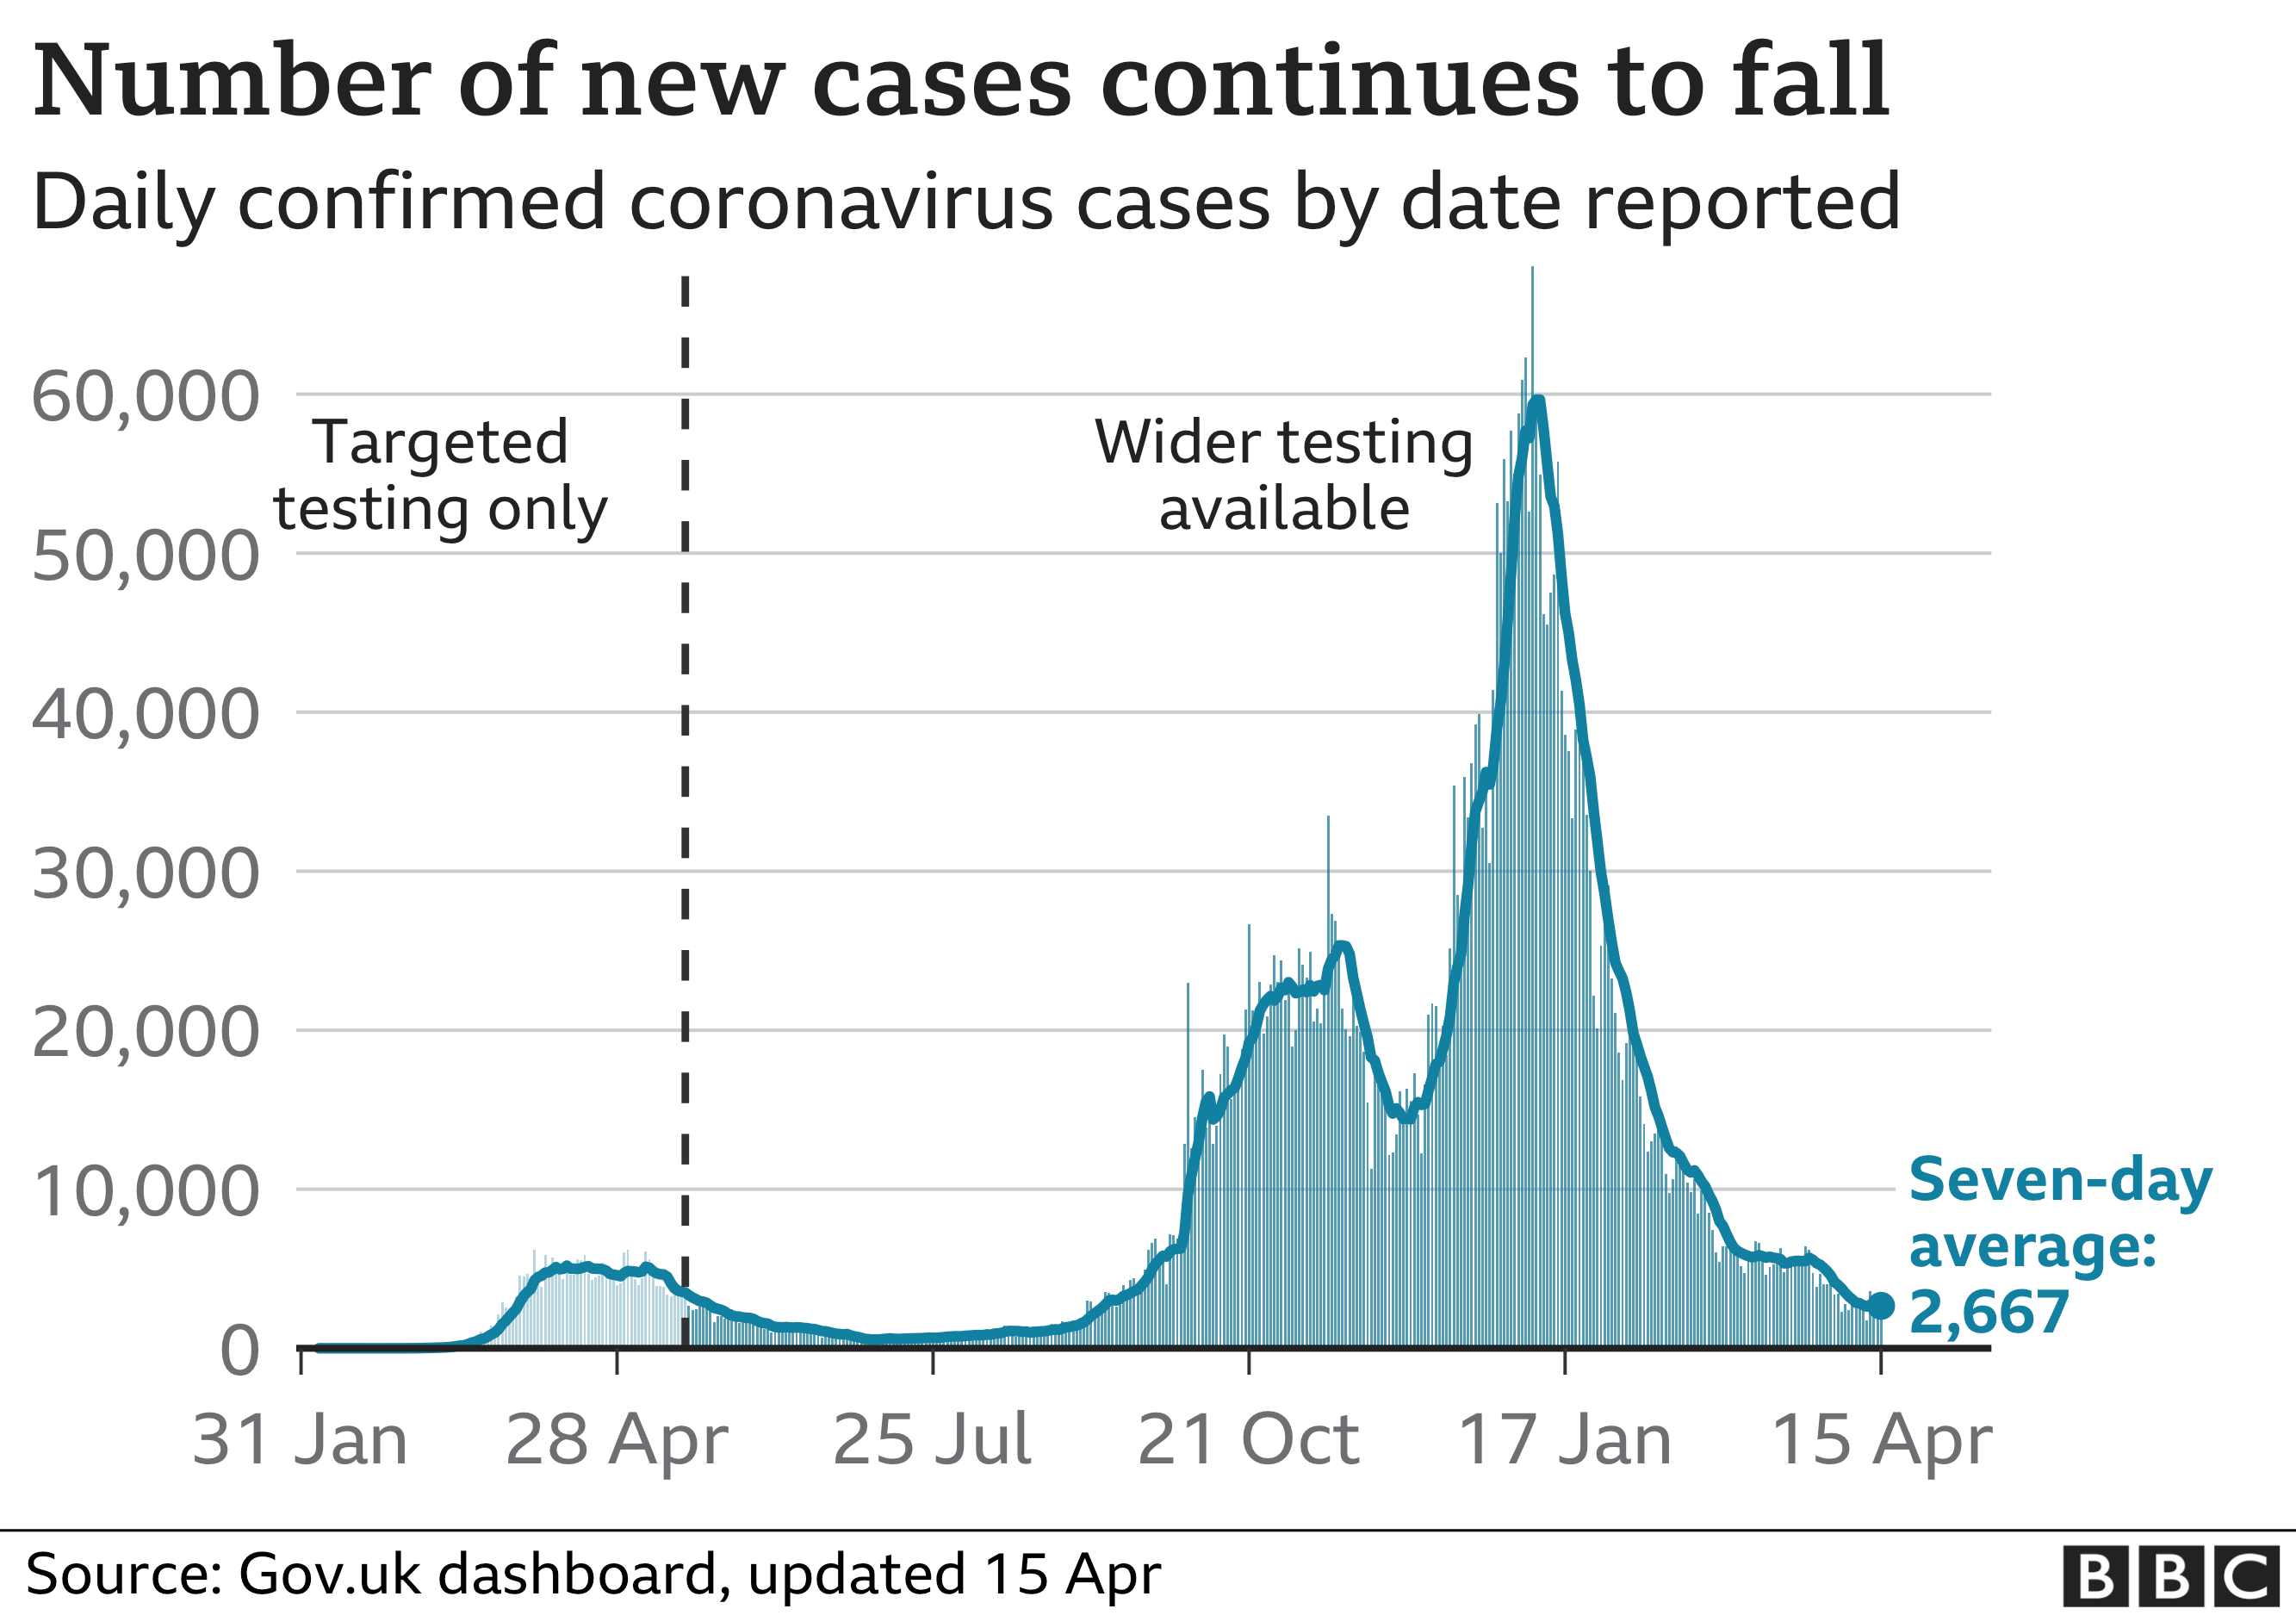 Chart shows daily cases continuing to fall